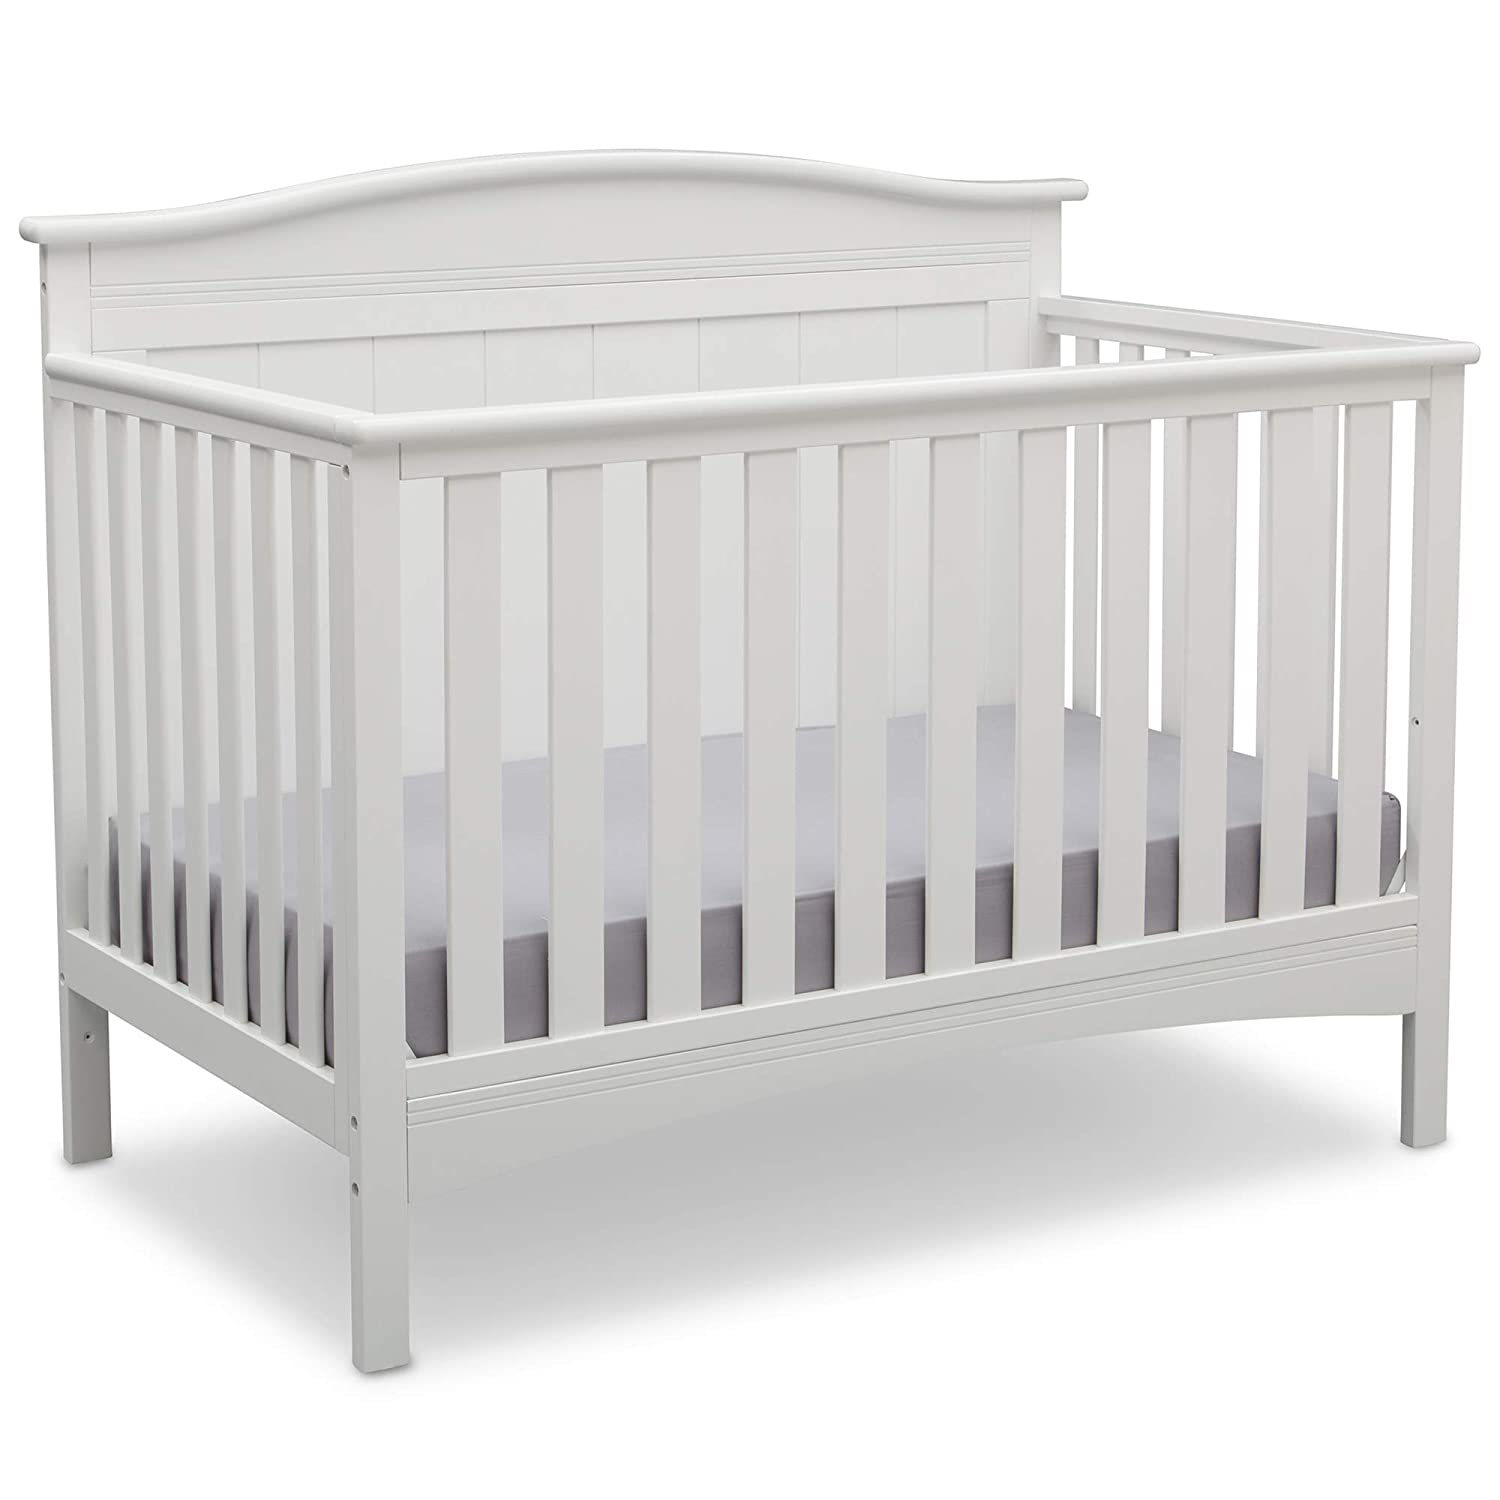 Baby Crib Mattress Critiques Amazon.com : Delta Children Bennett 4-in-1 Convertible Baby Crib, Bianca  White : Baby